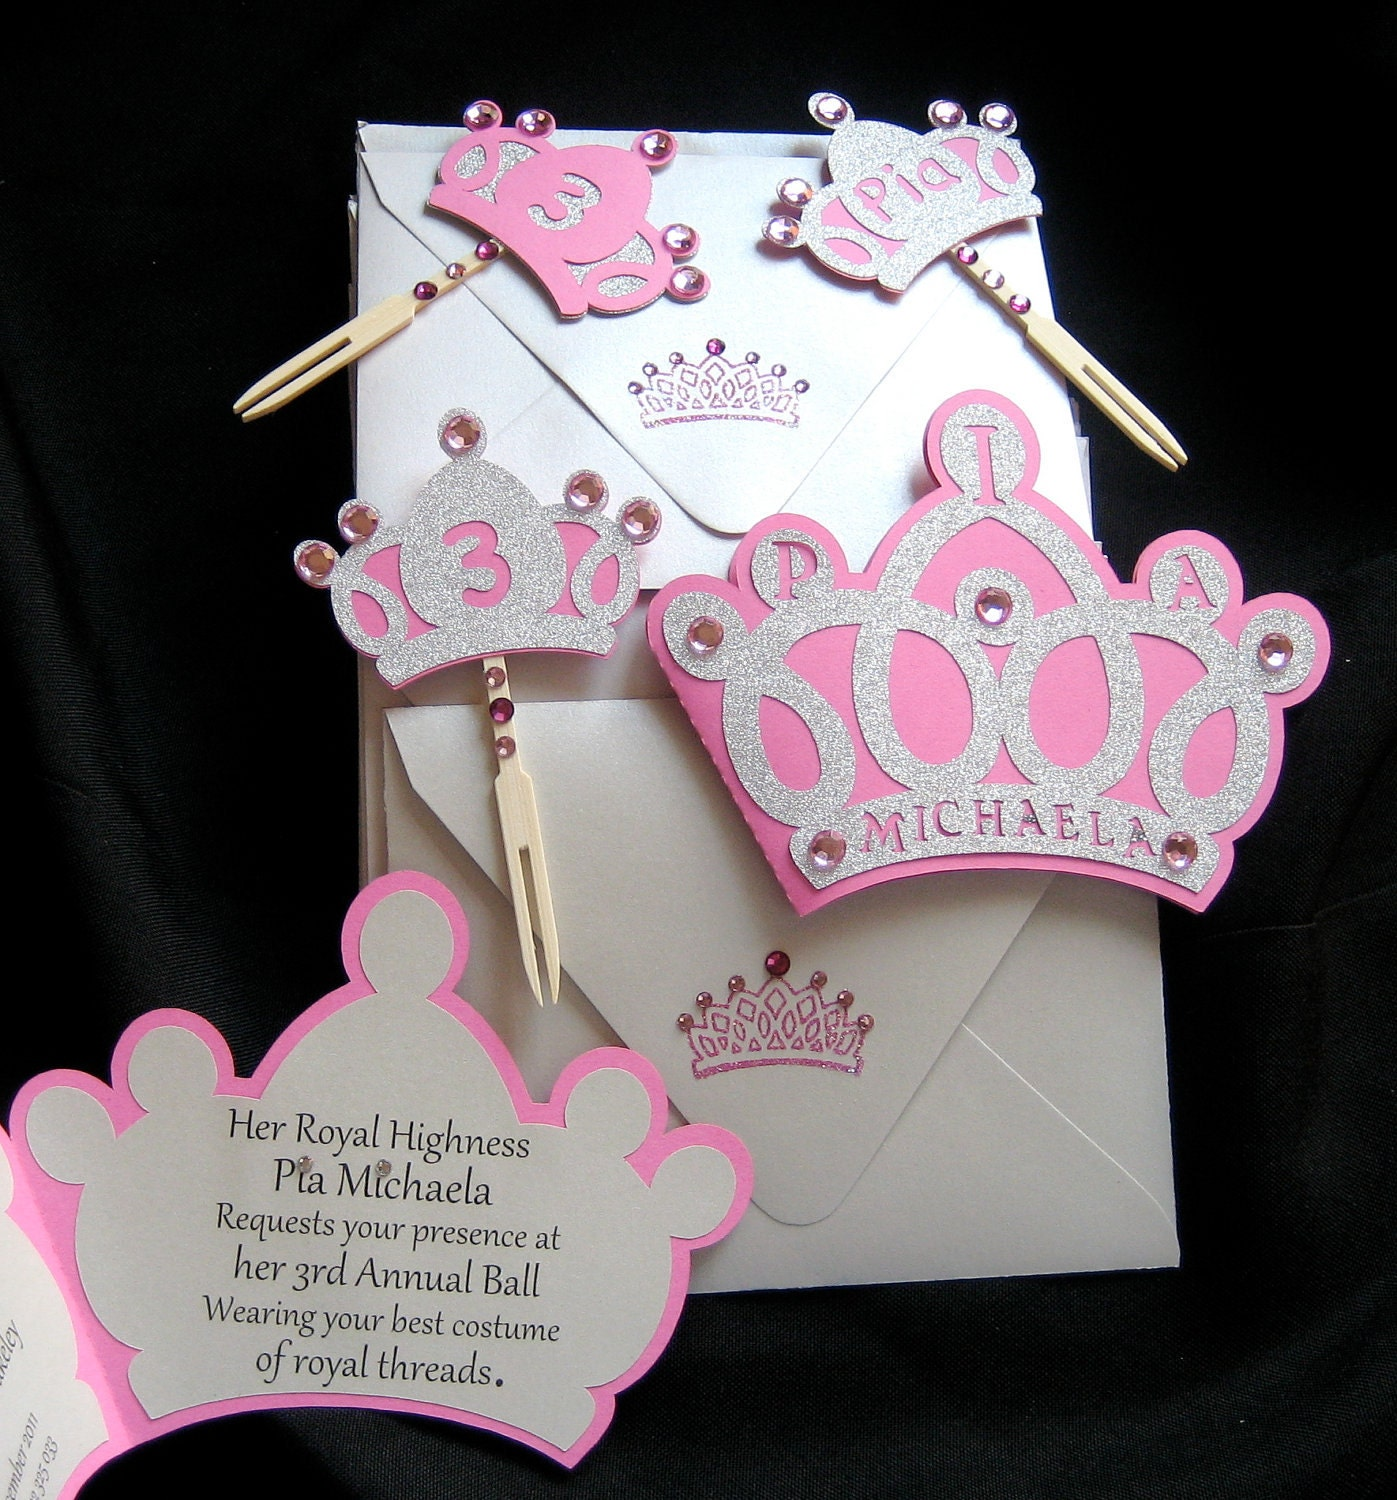 Princess Party Invitation Template with nice invitations example